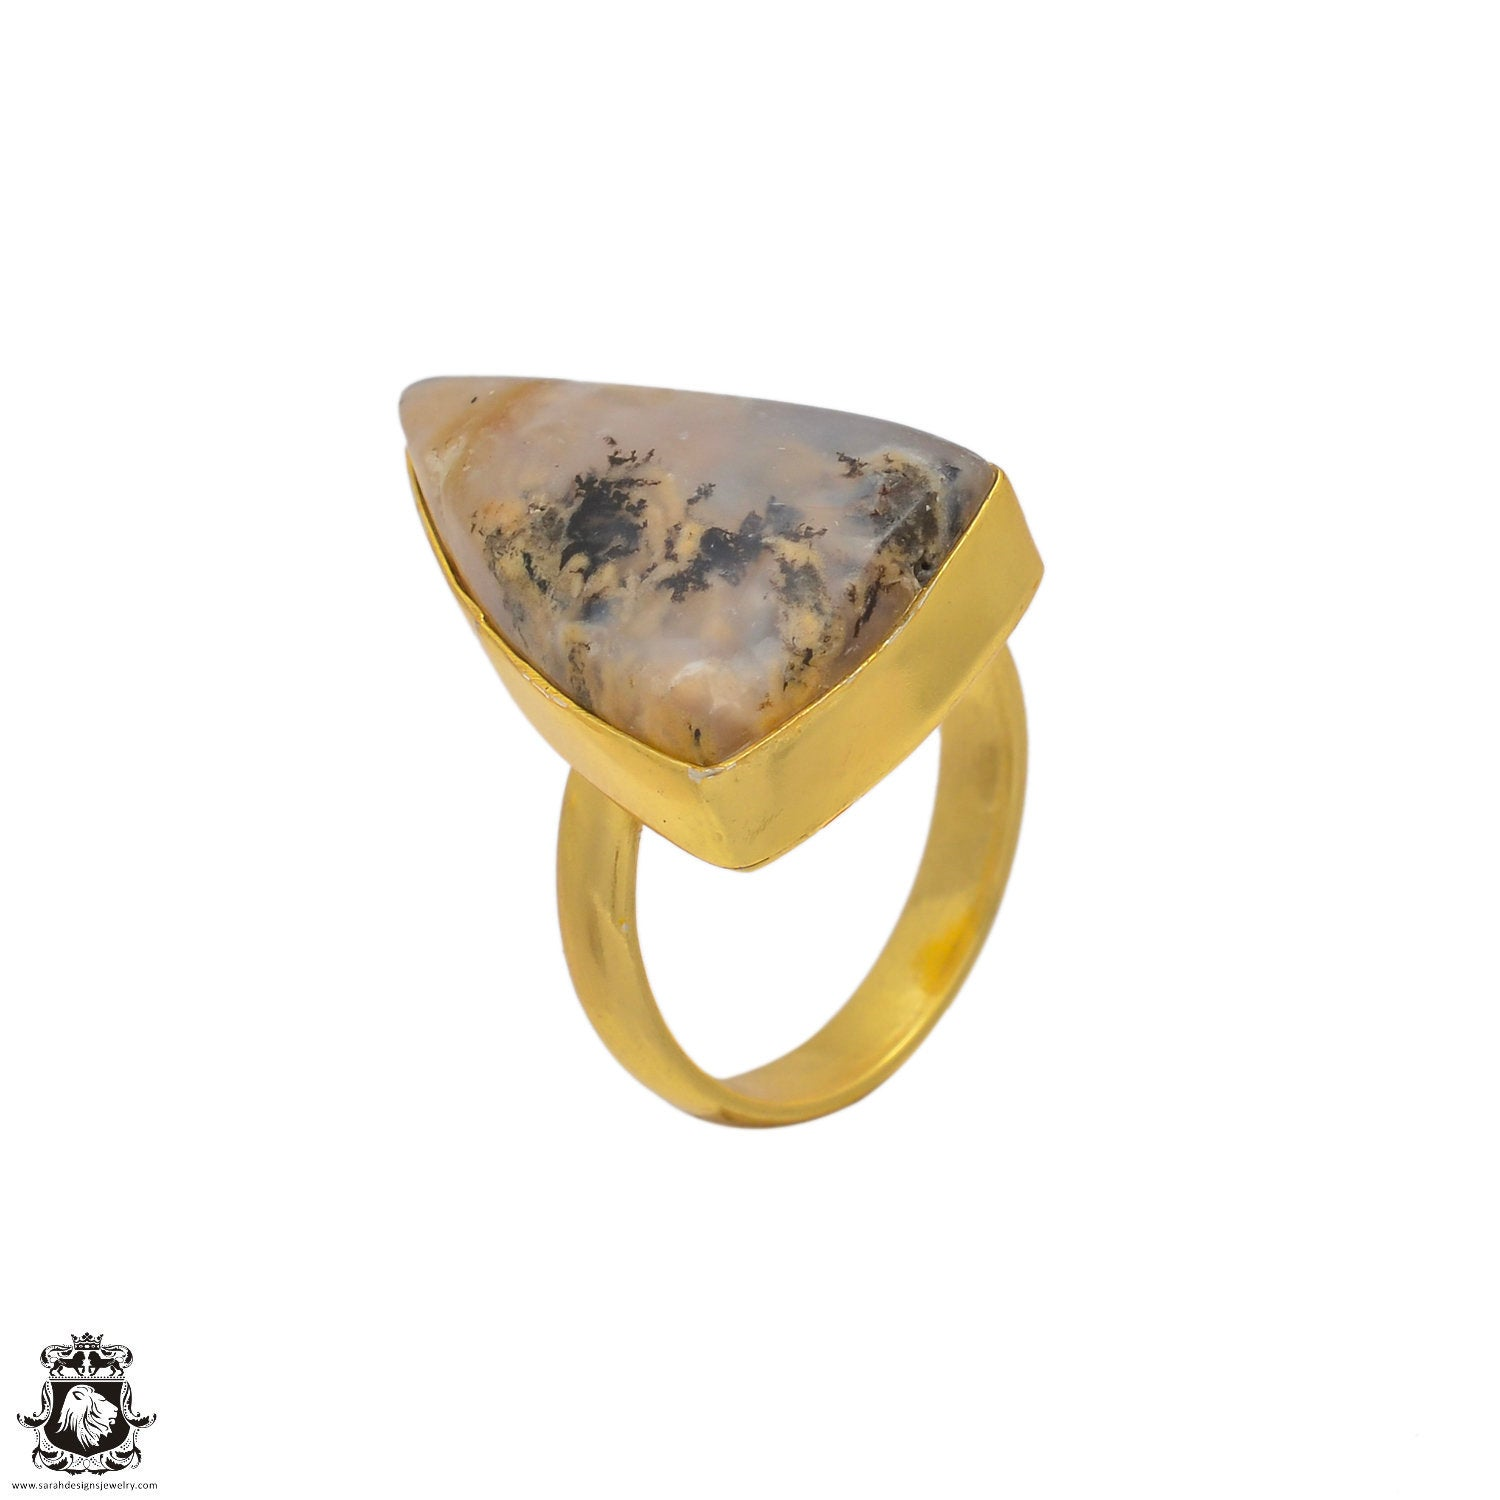 Size 8 Adjustable Montana Agate 24K Gold Plated Ring GPR84 Size 6.5